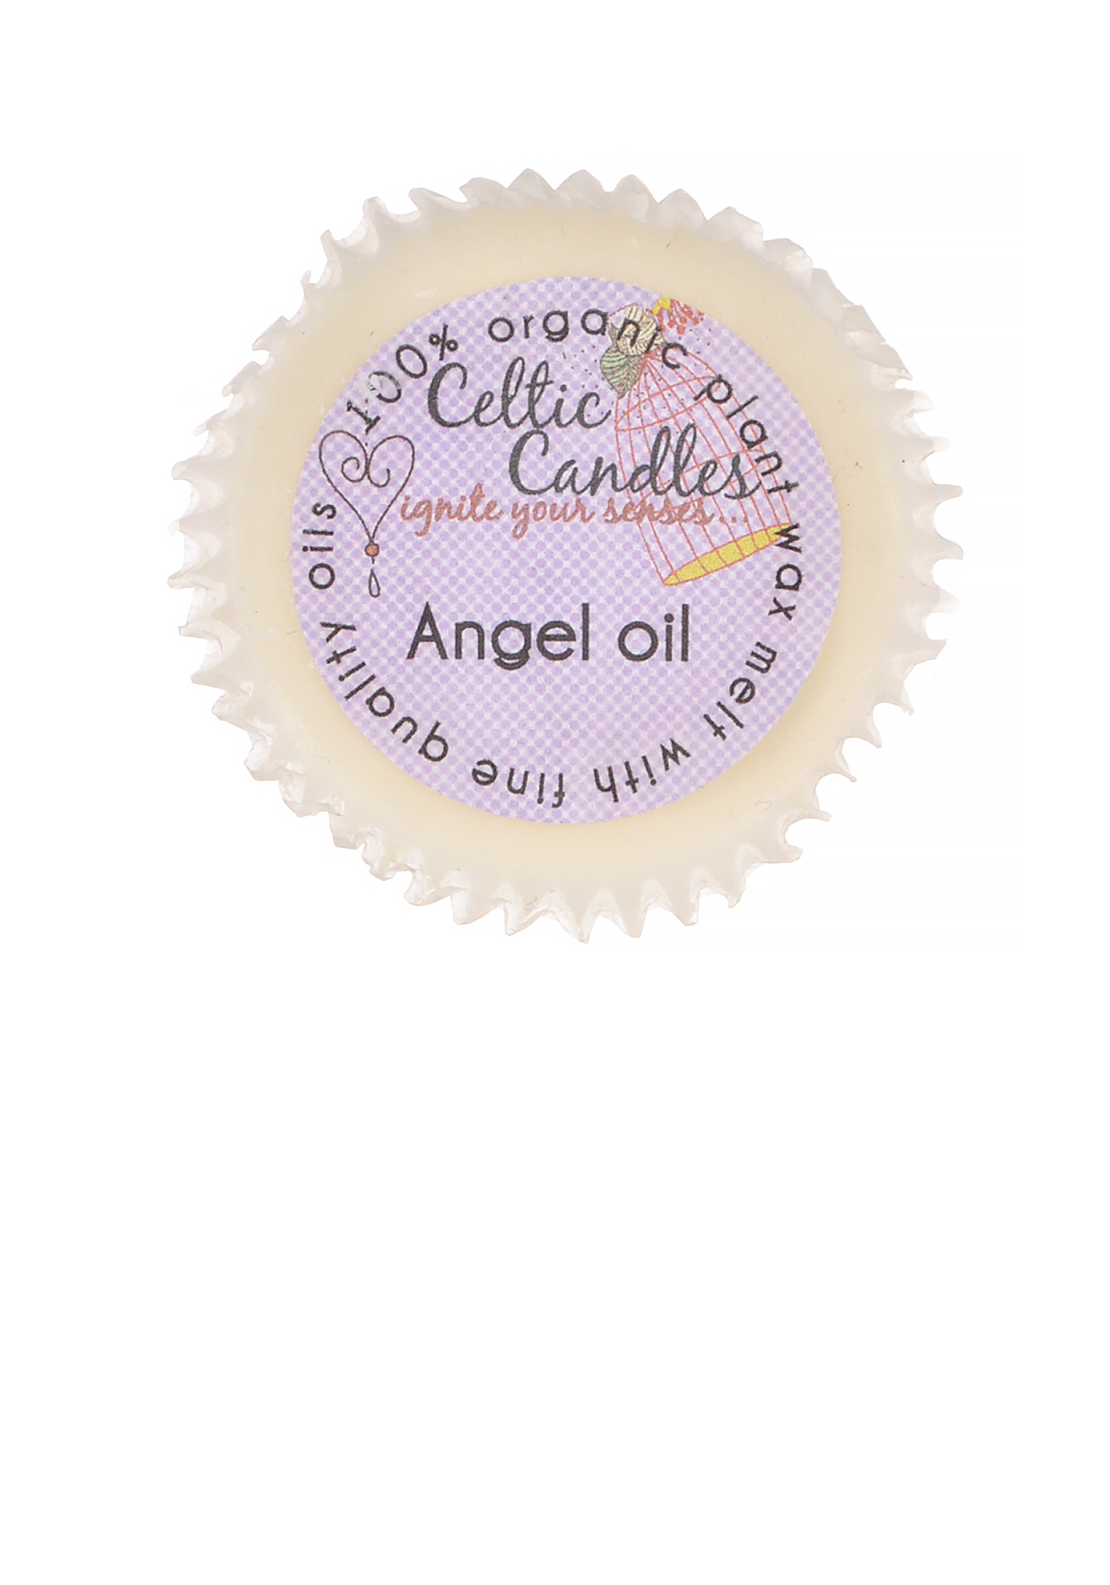 Celtic Candles Angel Oil Wax Melt